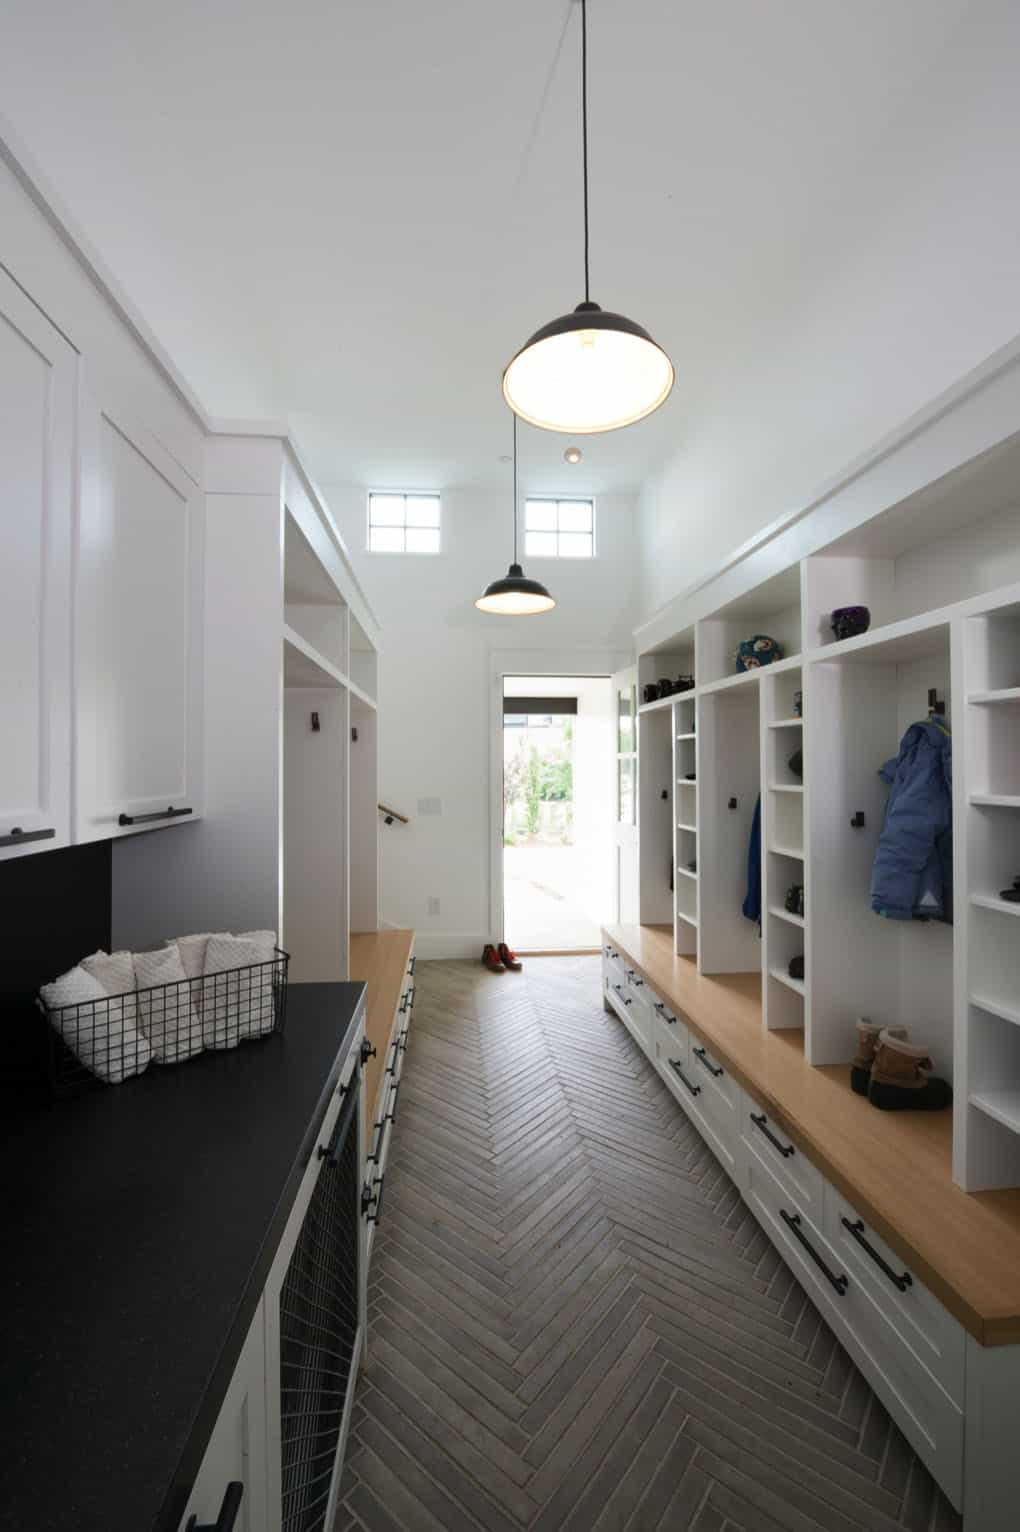 The entryway has a very farmhouse-inspired vibe as well, with plenty of storage and a lived-in look